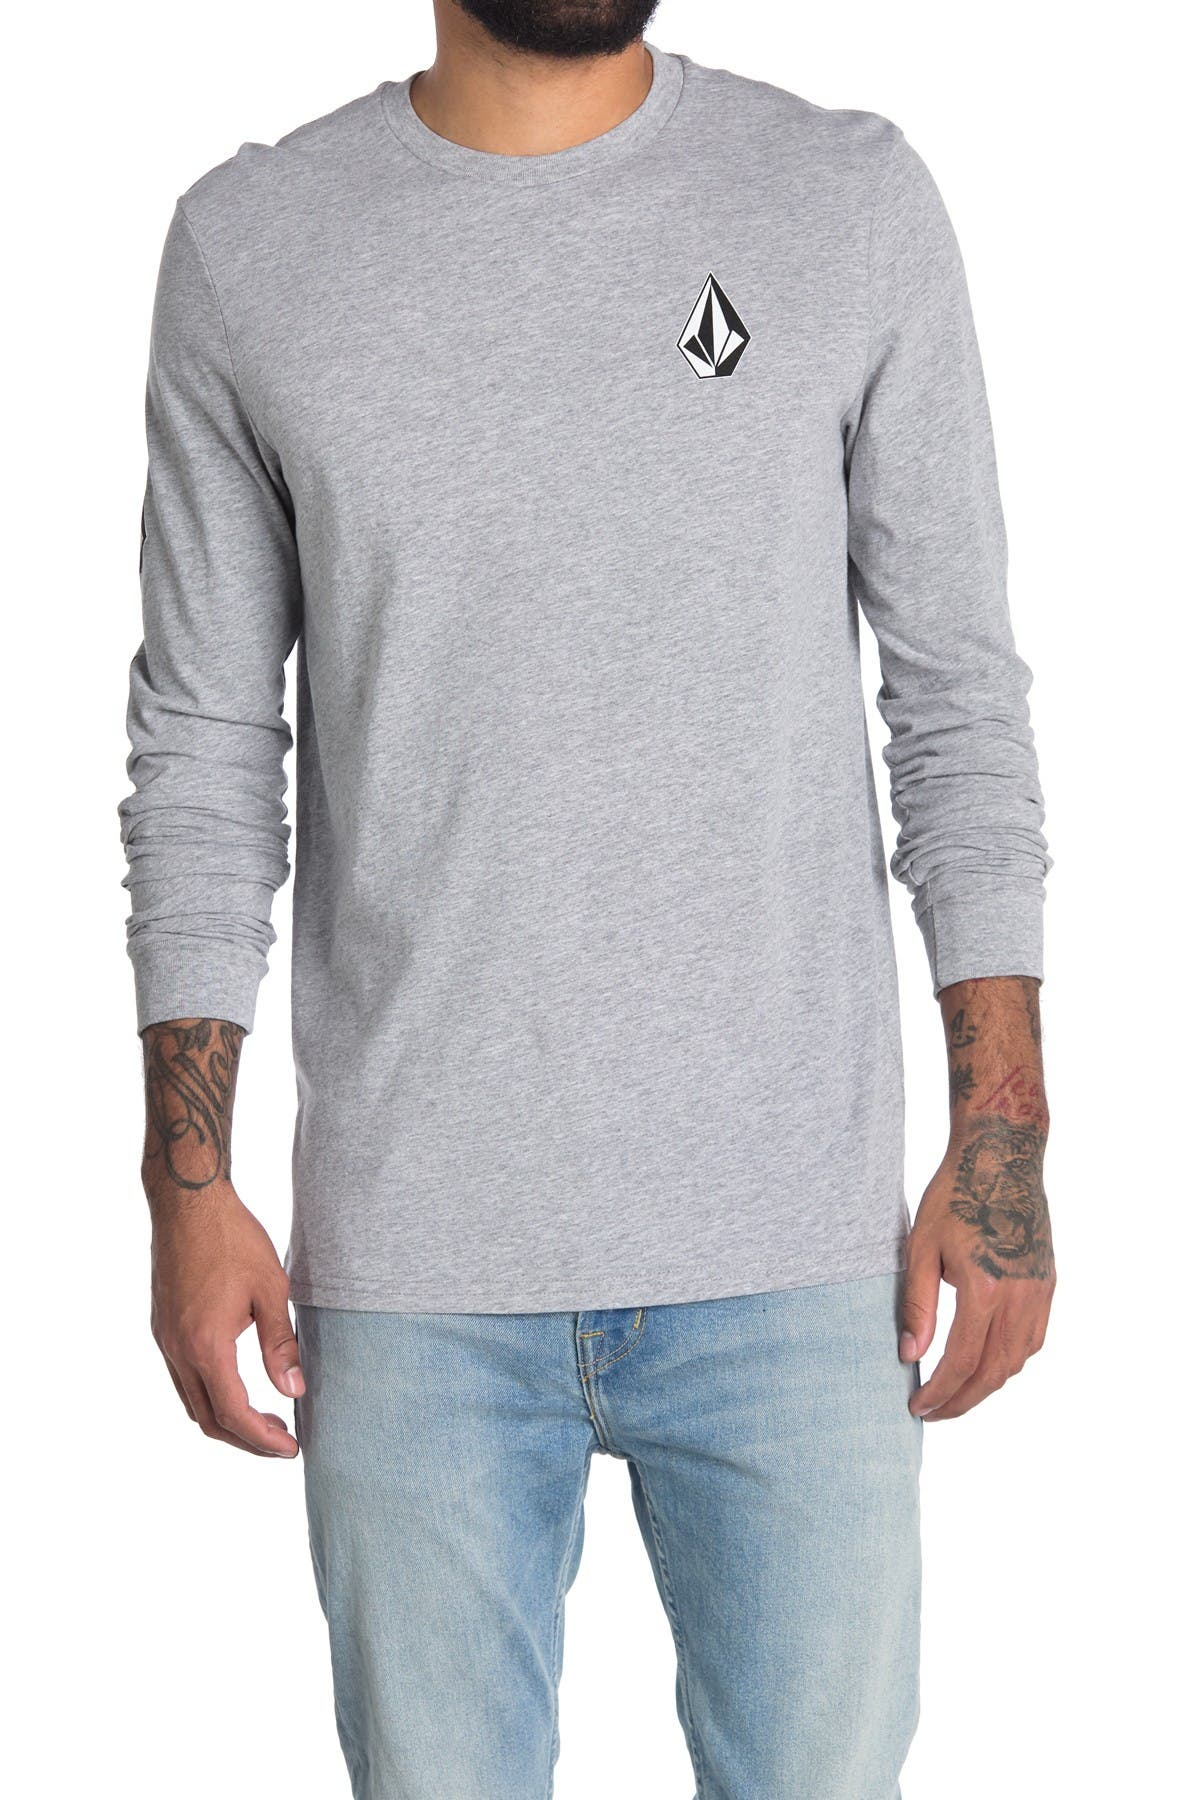 Image of Volcom Deadly Stones Long Sleeve T-Shirt